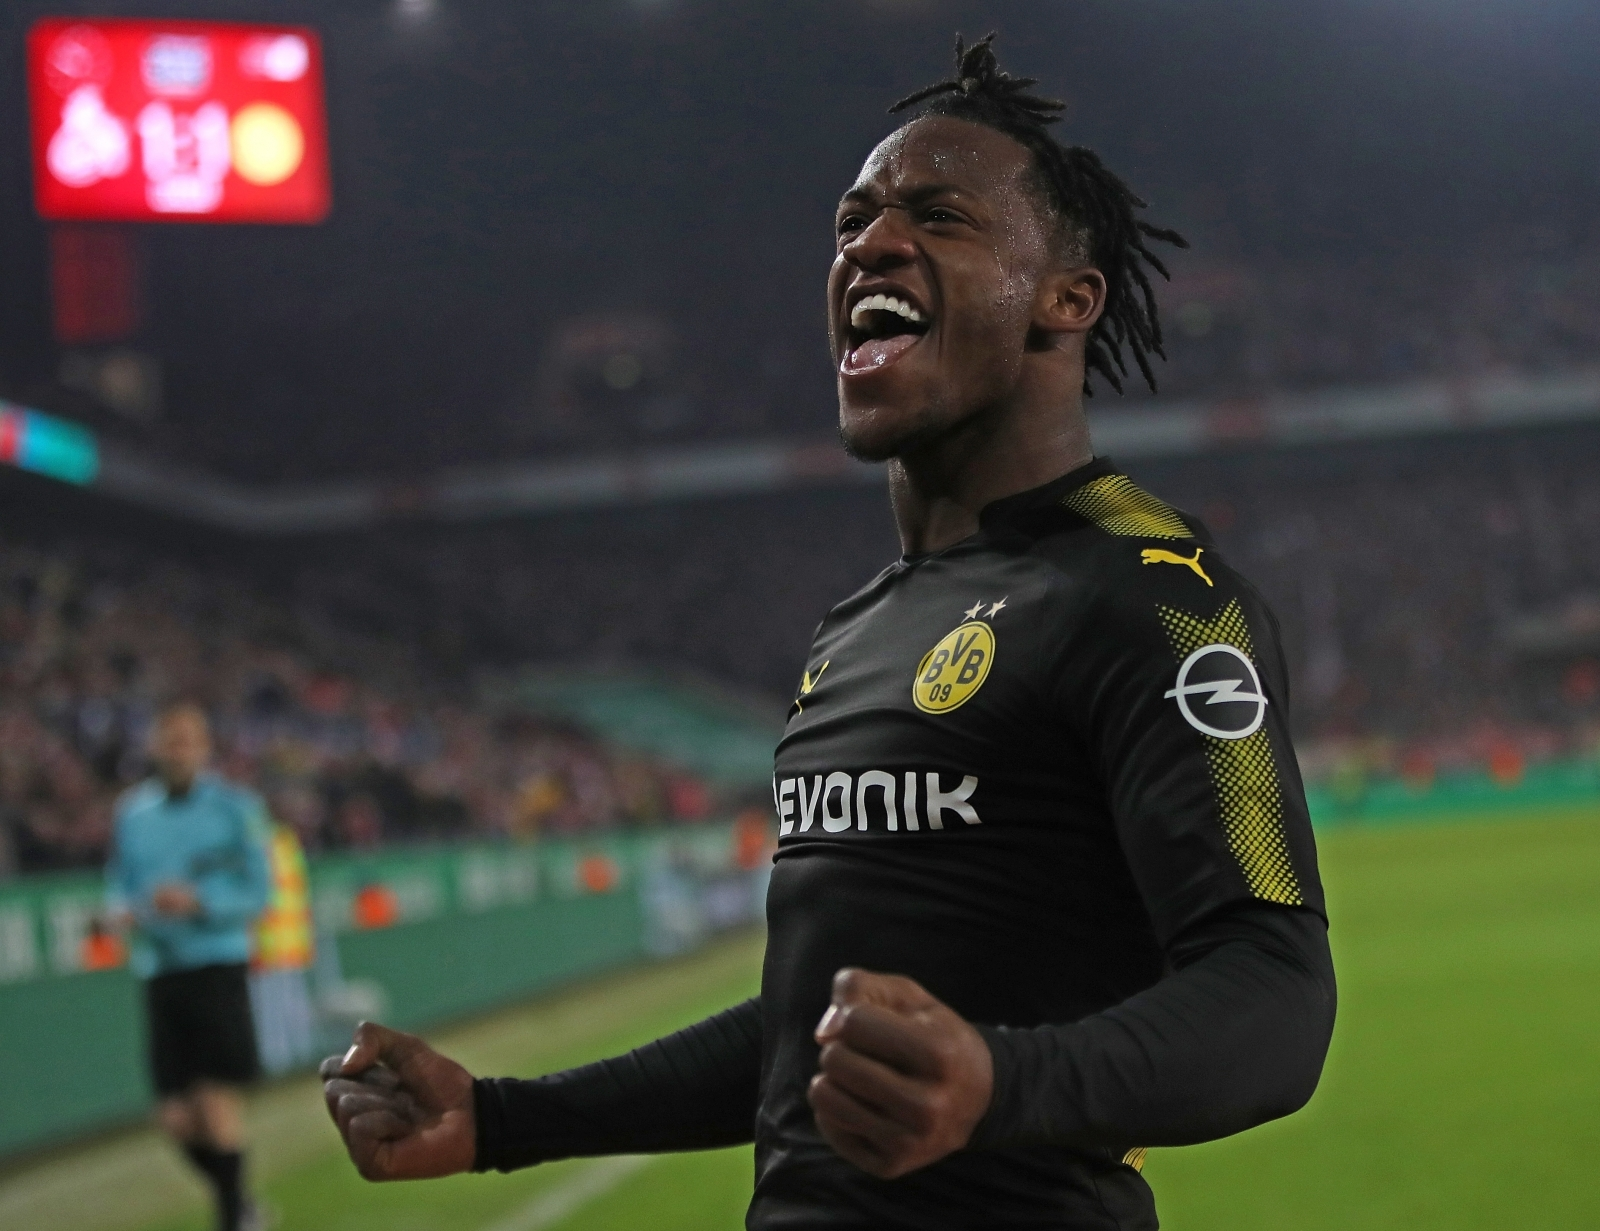 Borussia Dortmund Reportedly Eyeing Permanent Michy Batshuayi Deal in the Summer